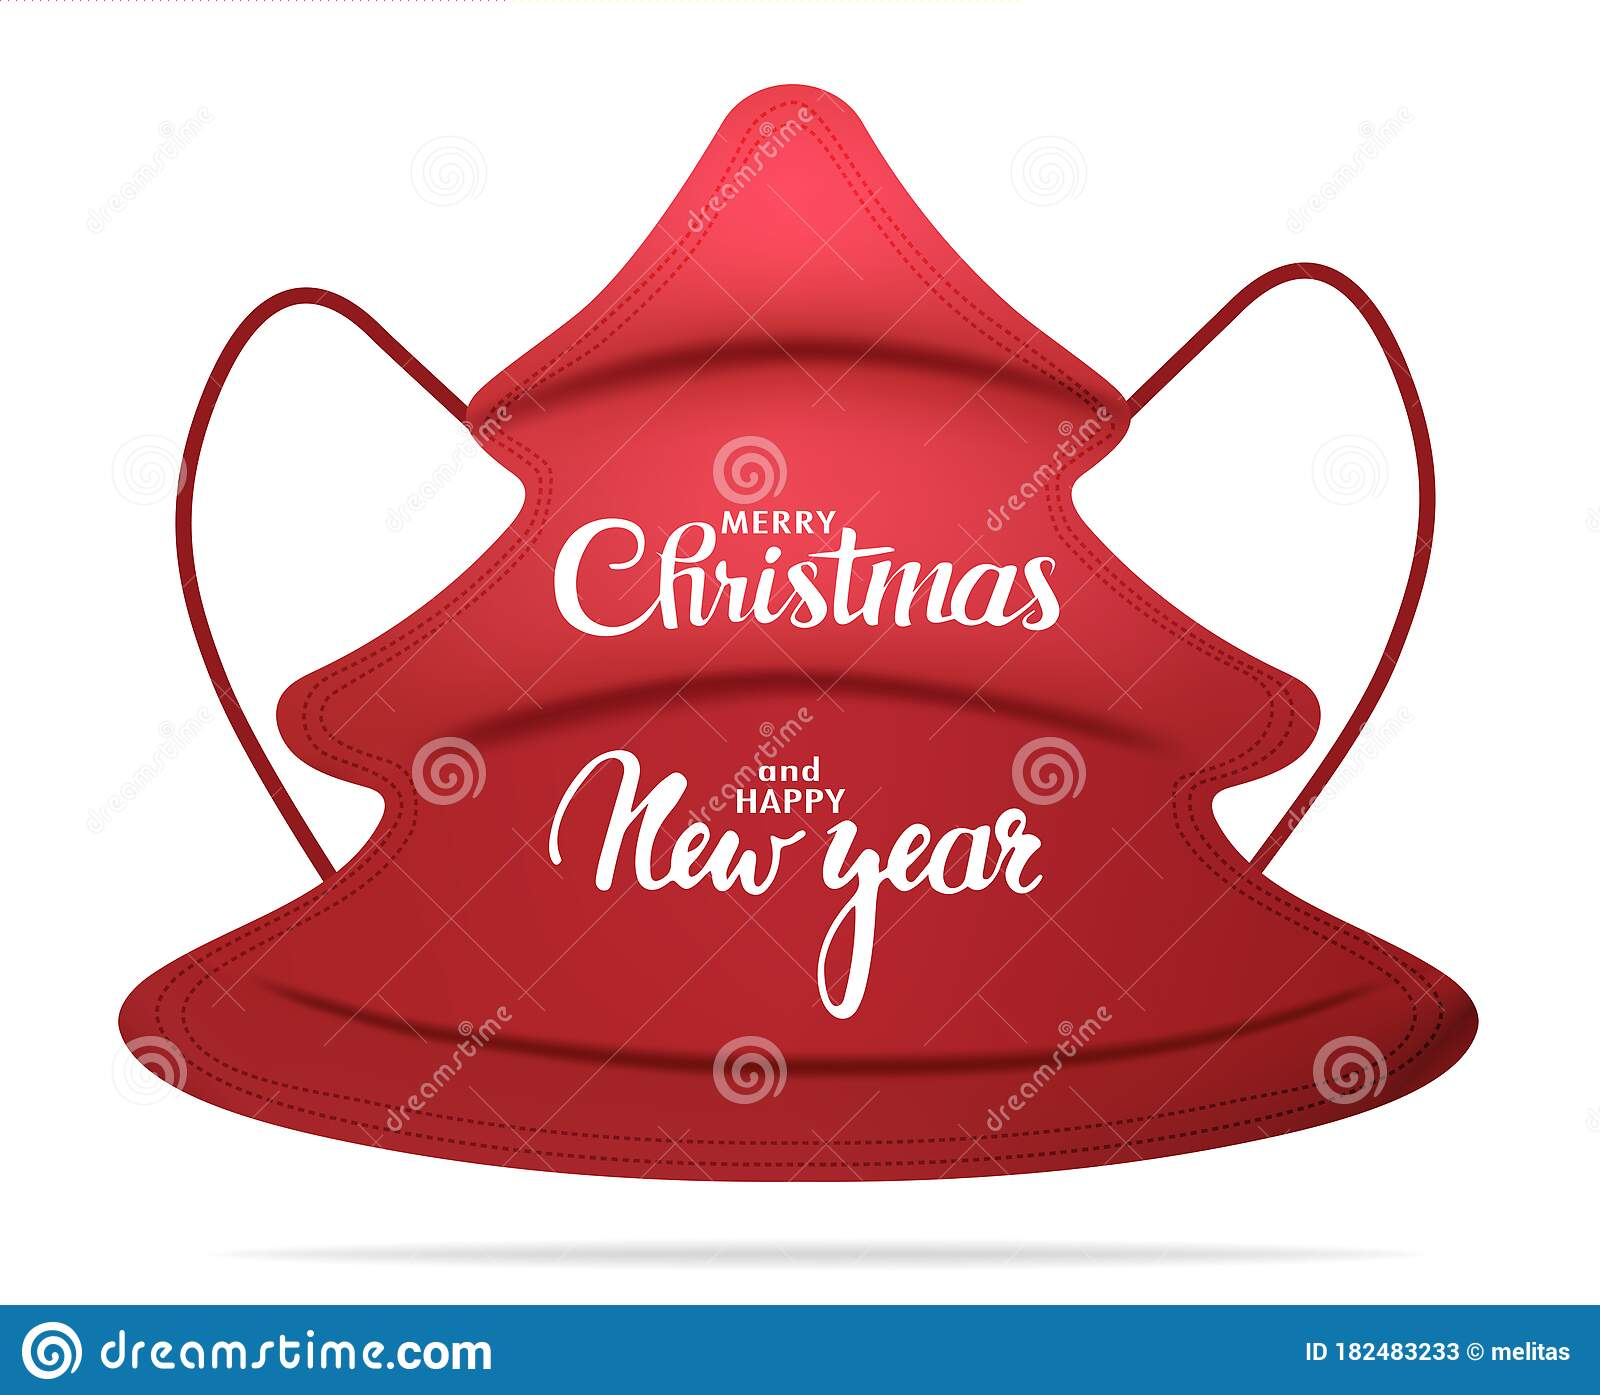 isolated red medical mask in the shape of a fir tree with the inscription merry christmas and happy new year christmas greetings stock vector illustration of lockdown diarrhea 182483233 dreamstime com